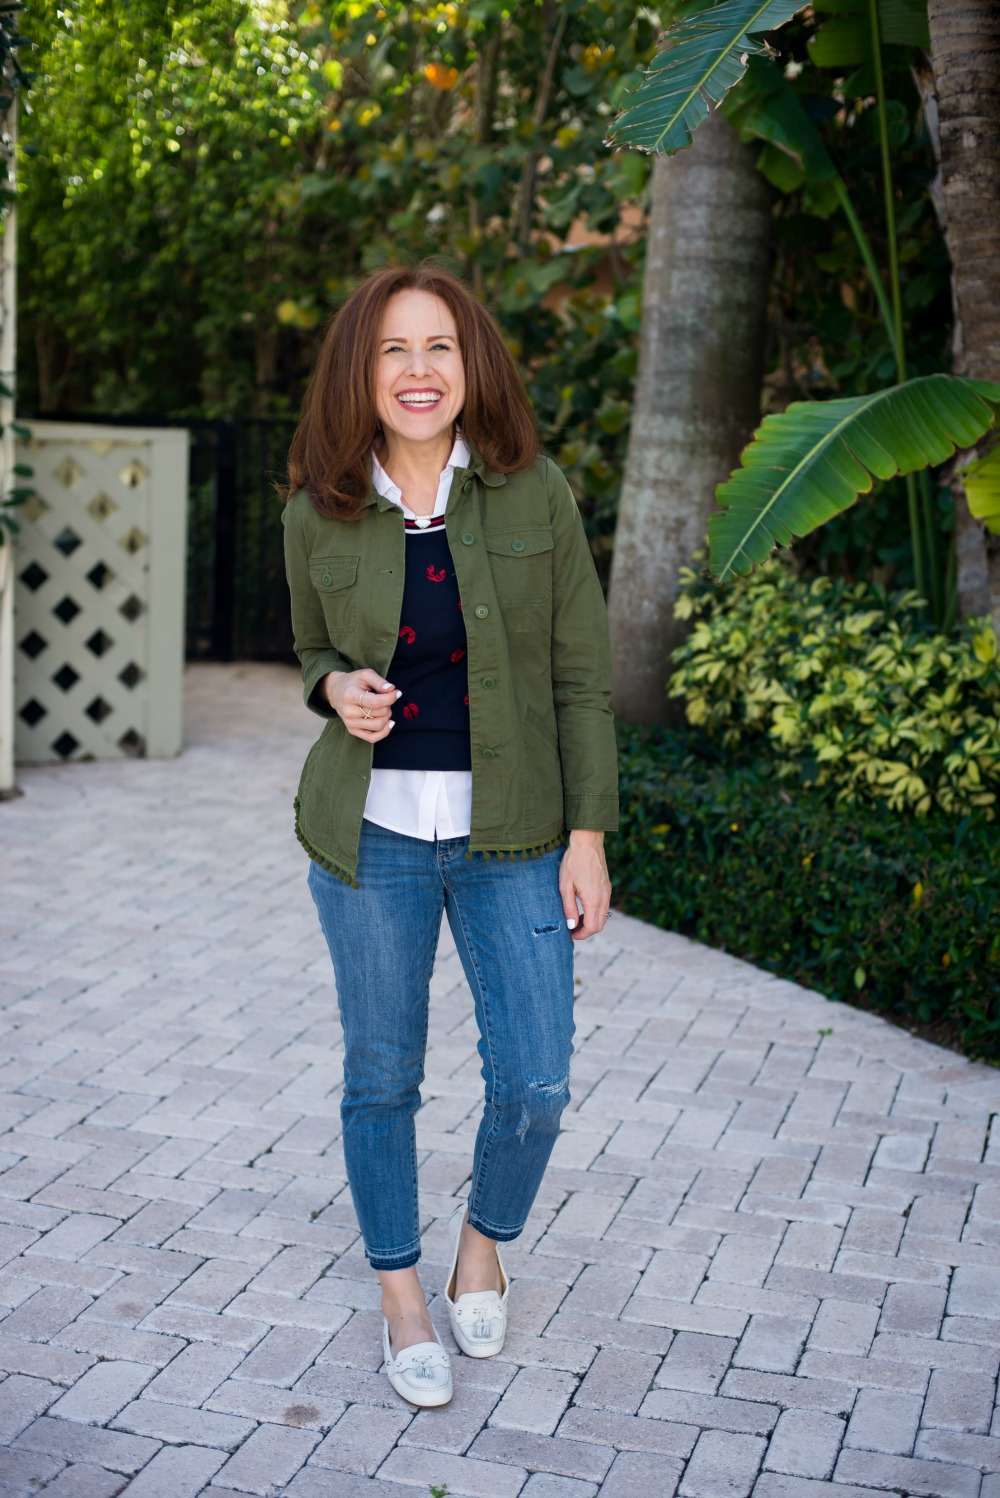 Talbots collection with Oprah Magazine Collection 2018 - Popular Florida style blogger The Modern Savvy